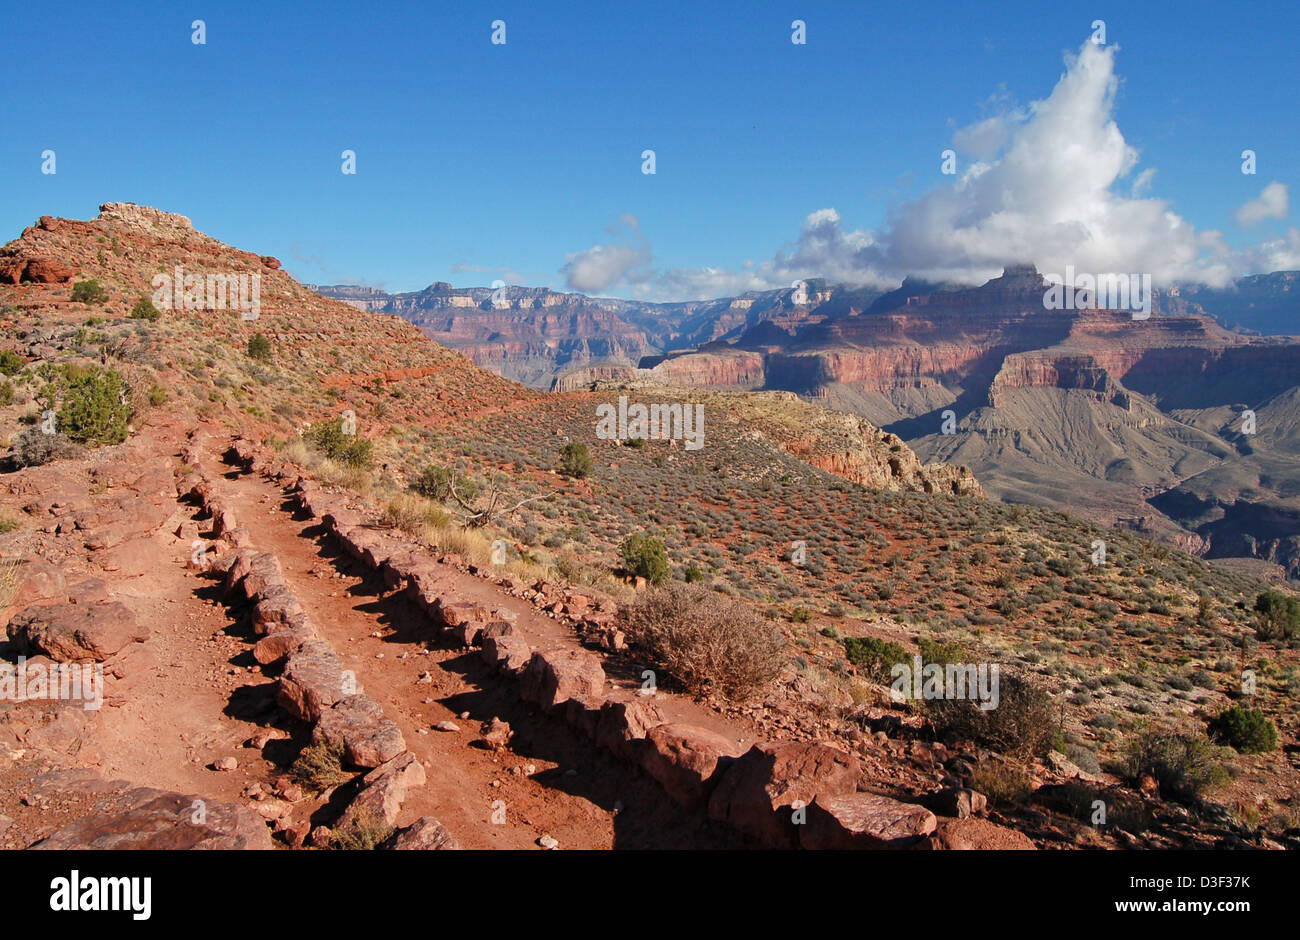 200611_380 Mormon Flats: South Kaibab Trail - Stock Image